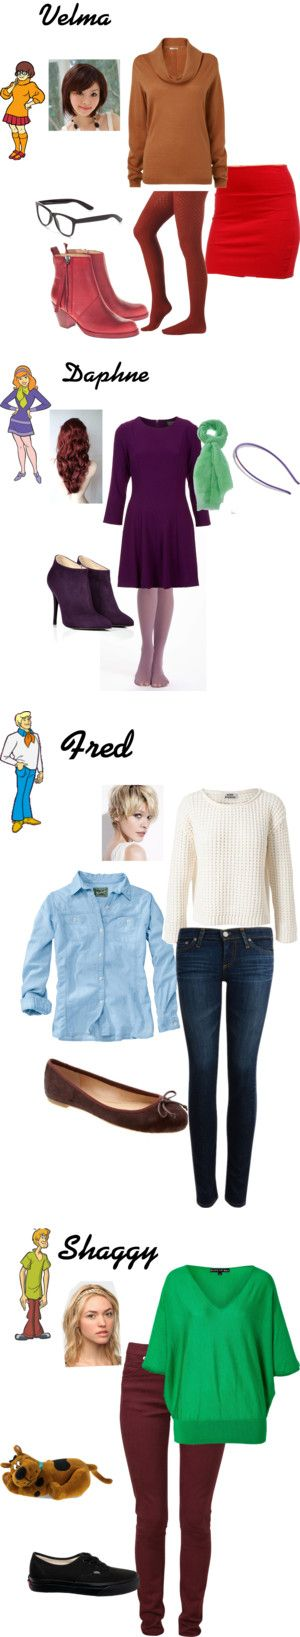 """""""Scooby Doo"""" by nchavez113 on Polyvore // I almost did a Daphne casual cosplay for a halloween party last year!"""